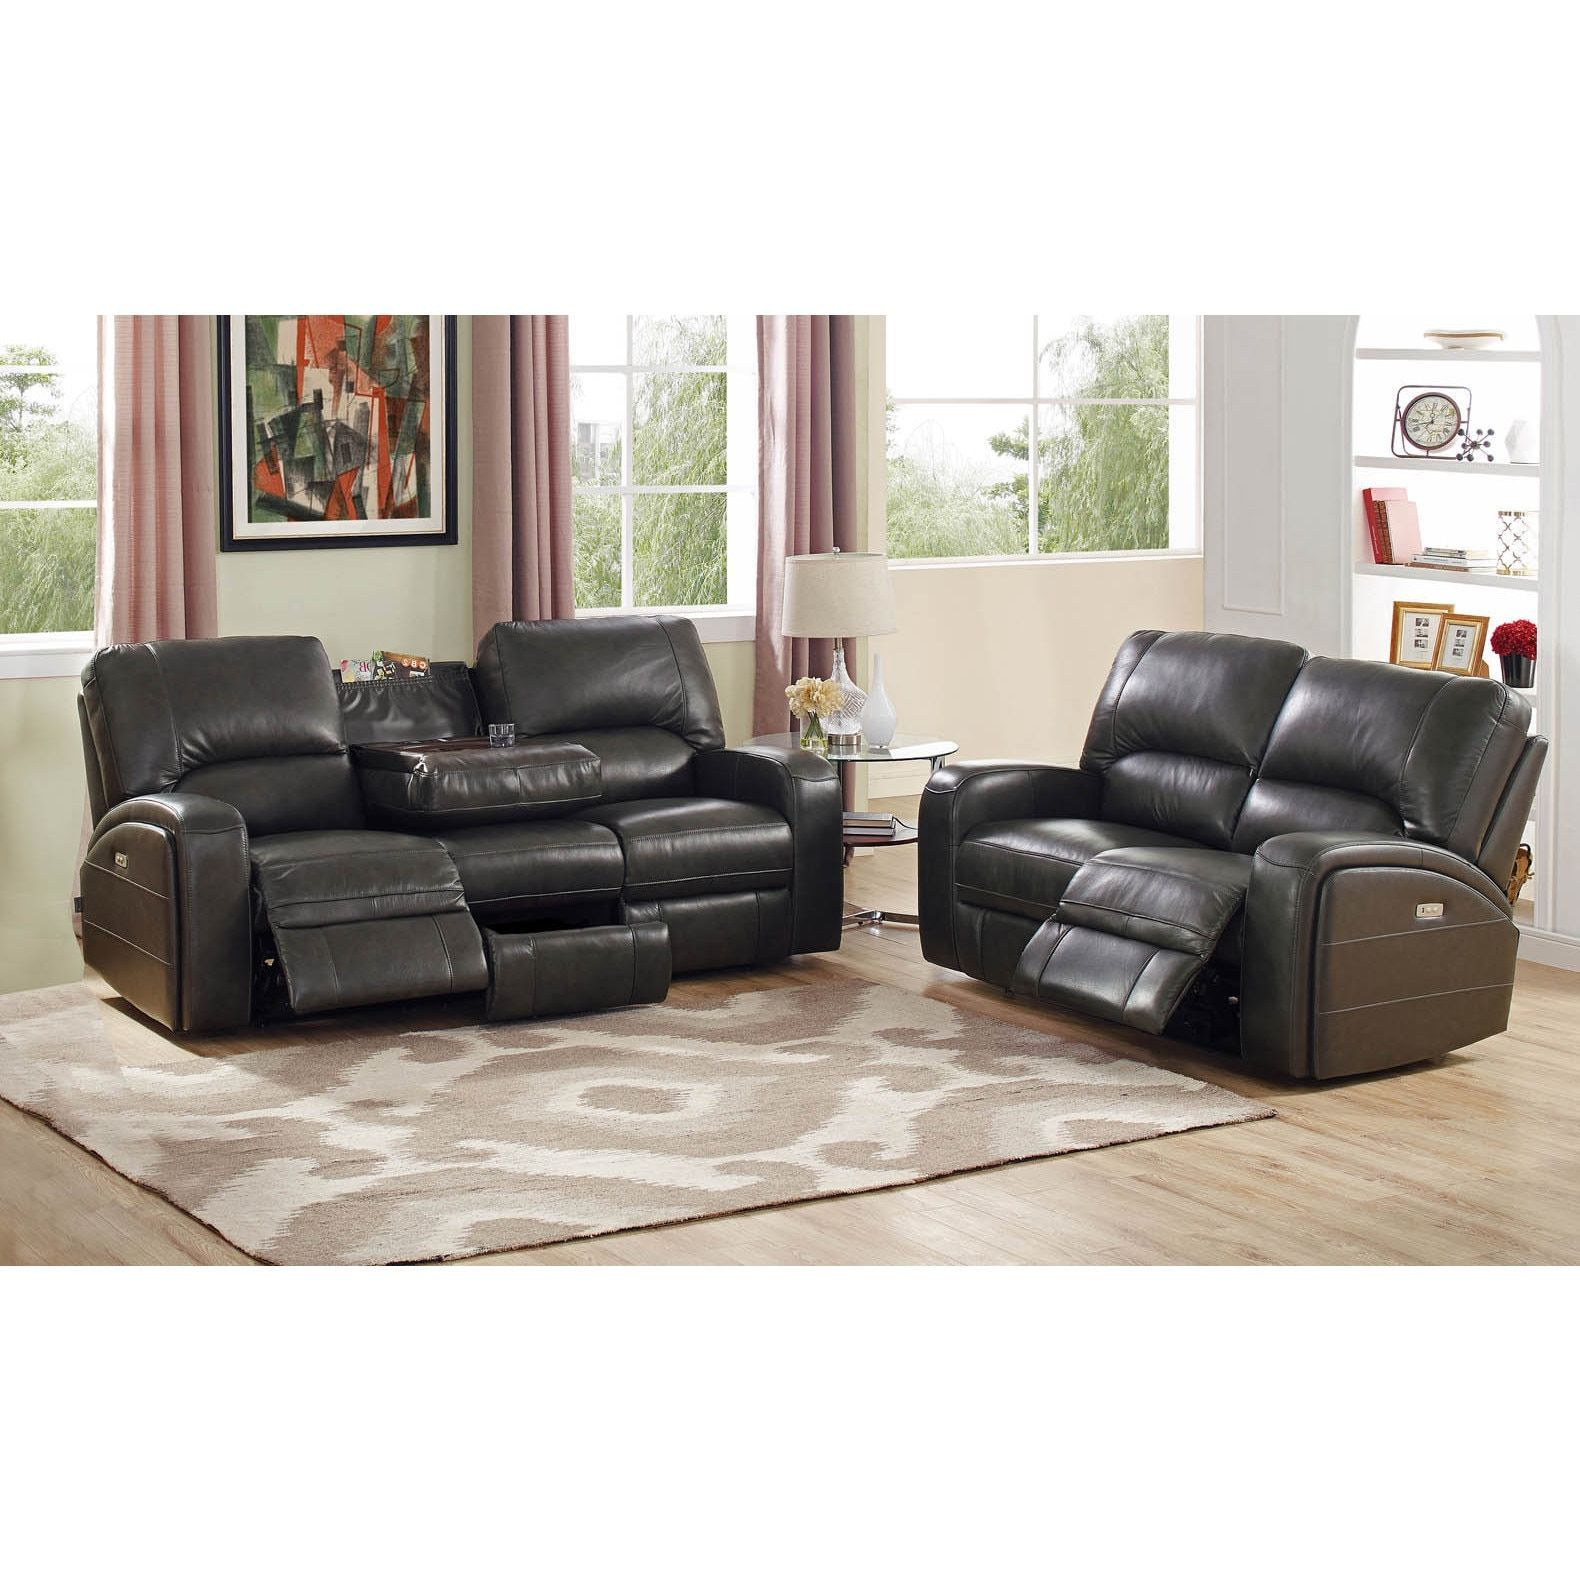 Hydeline by Amax Newcastle Top Grain Leather Power Reclining